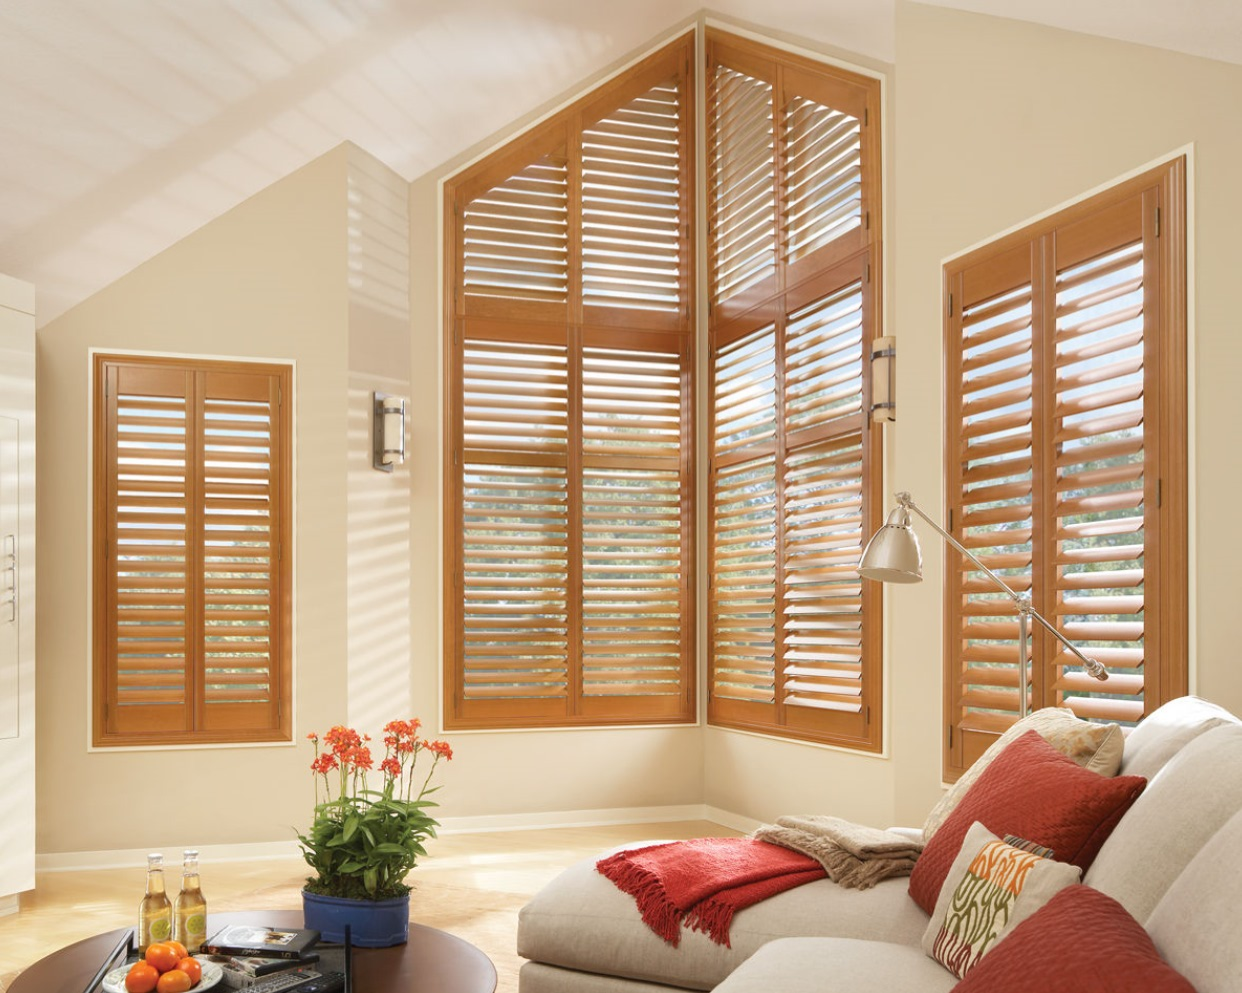 Wood shutters for odd-shaped windows